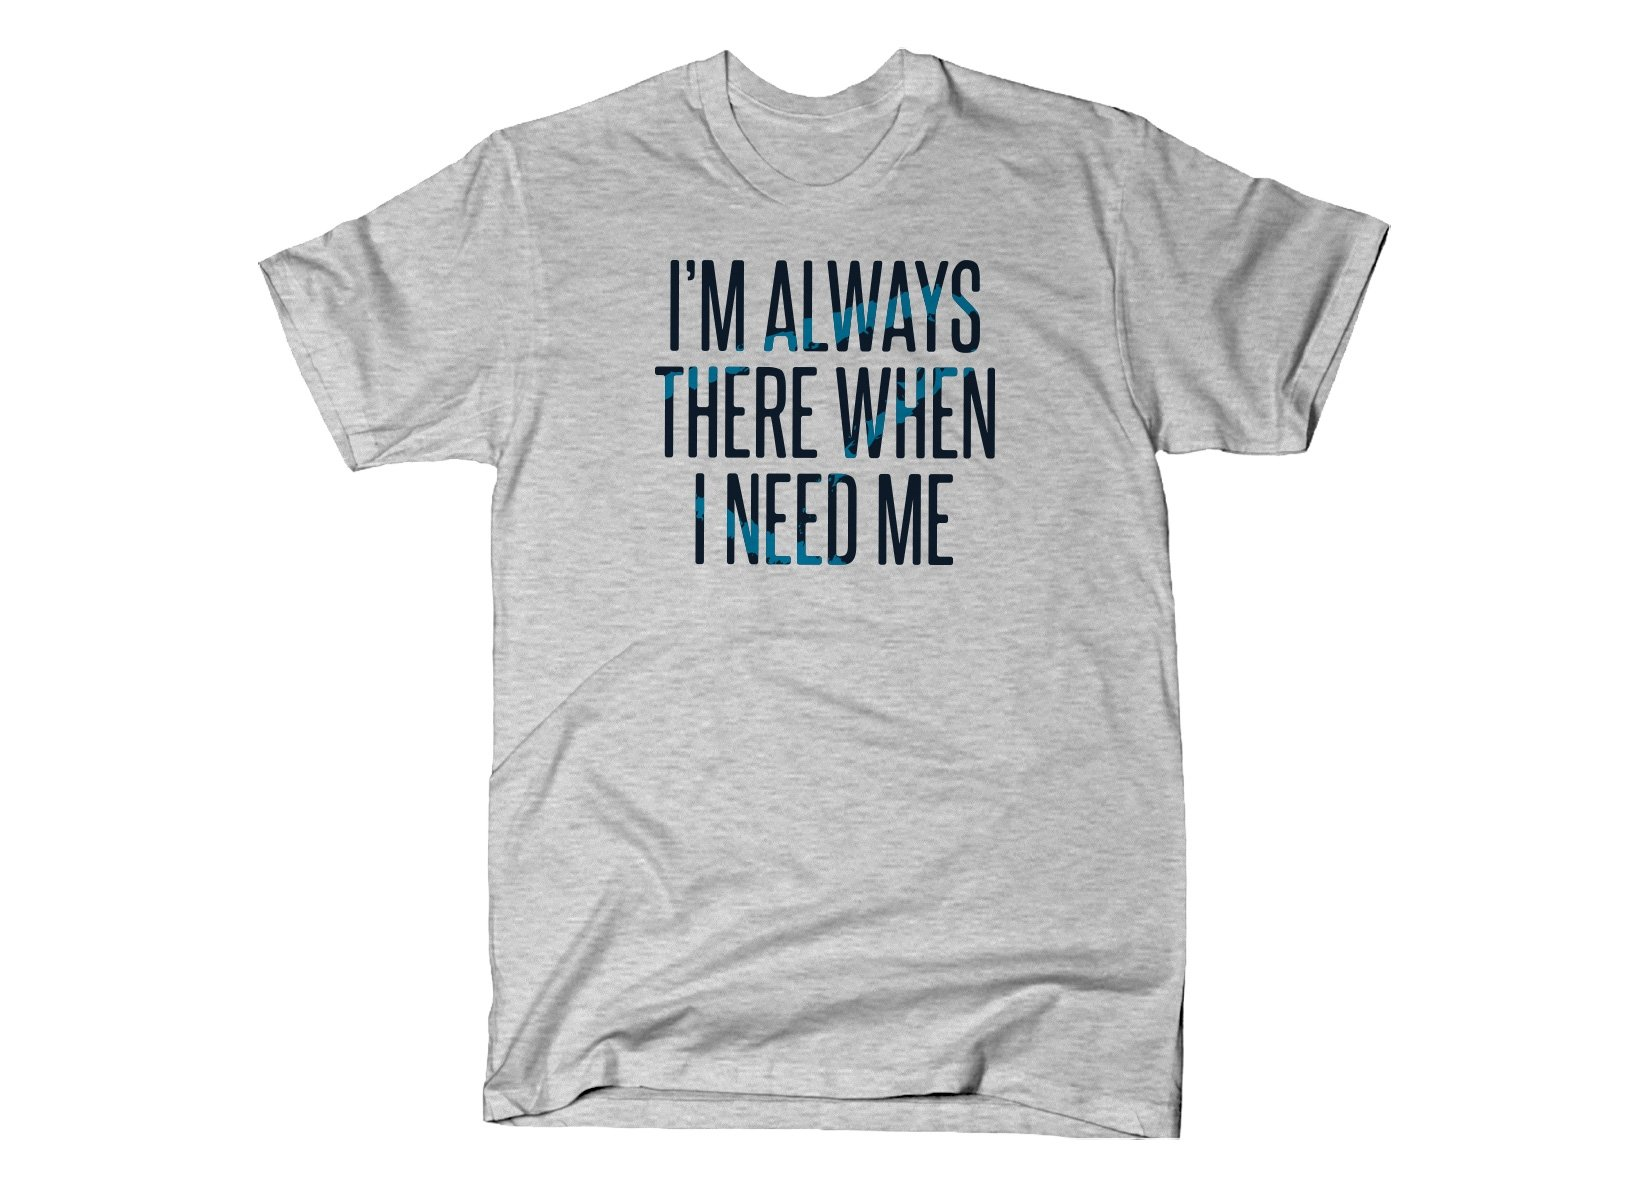 I'm Always There When I Need Me on Mens T-Shirt